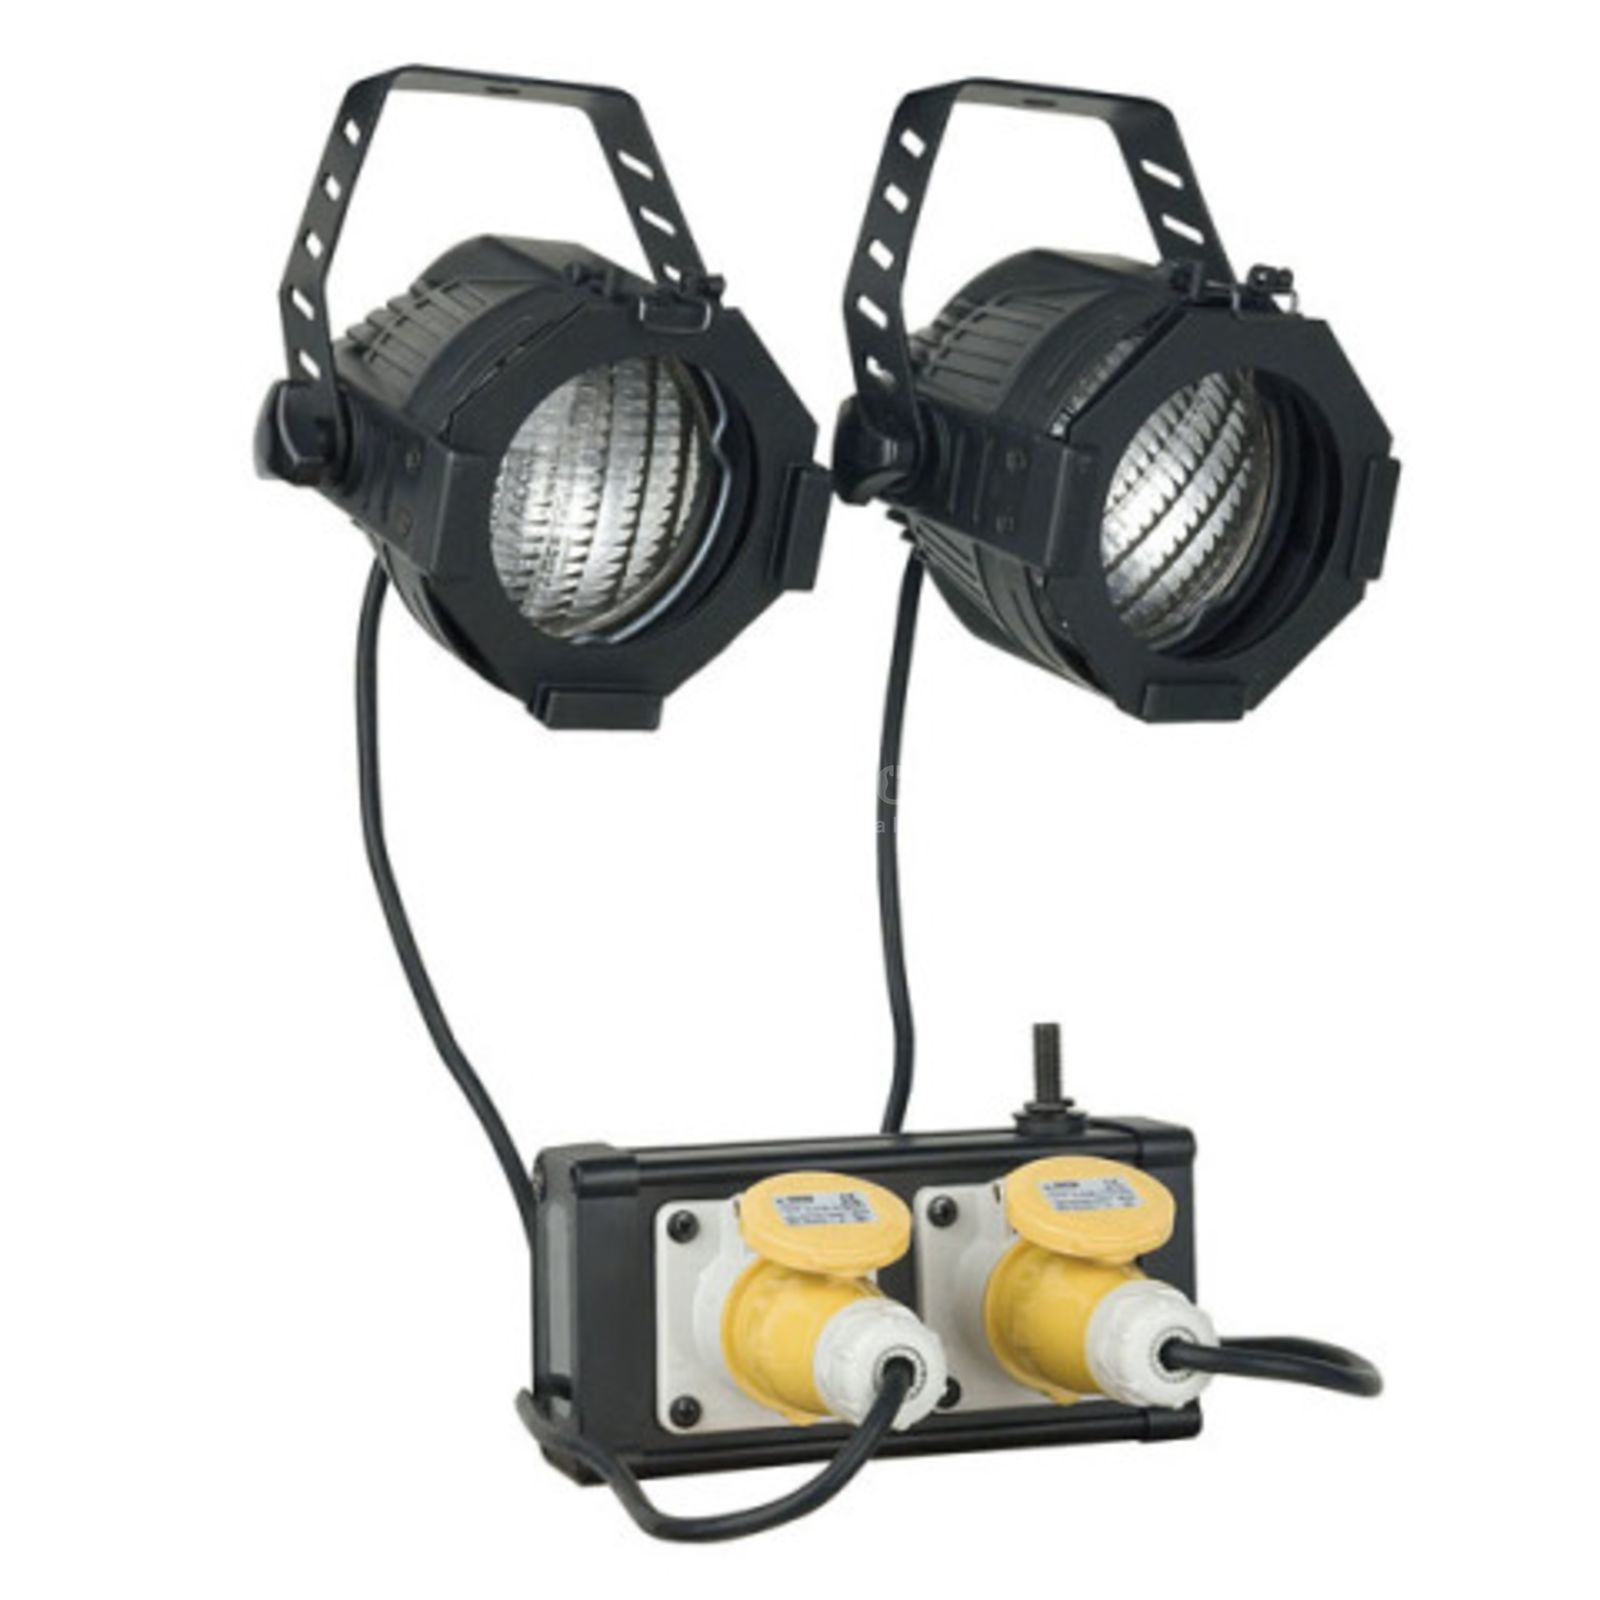 Showtec DWE Audience Blinder Set Product Image